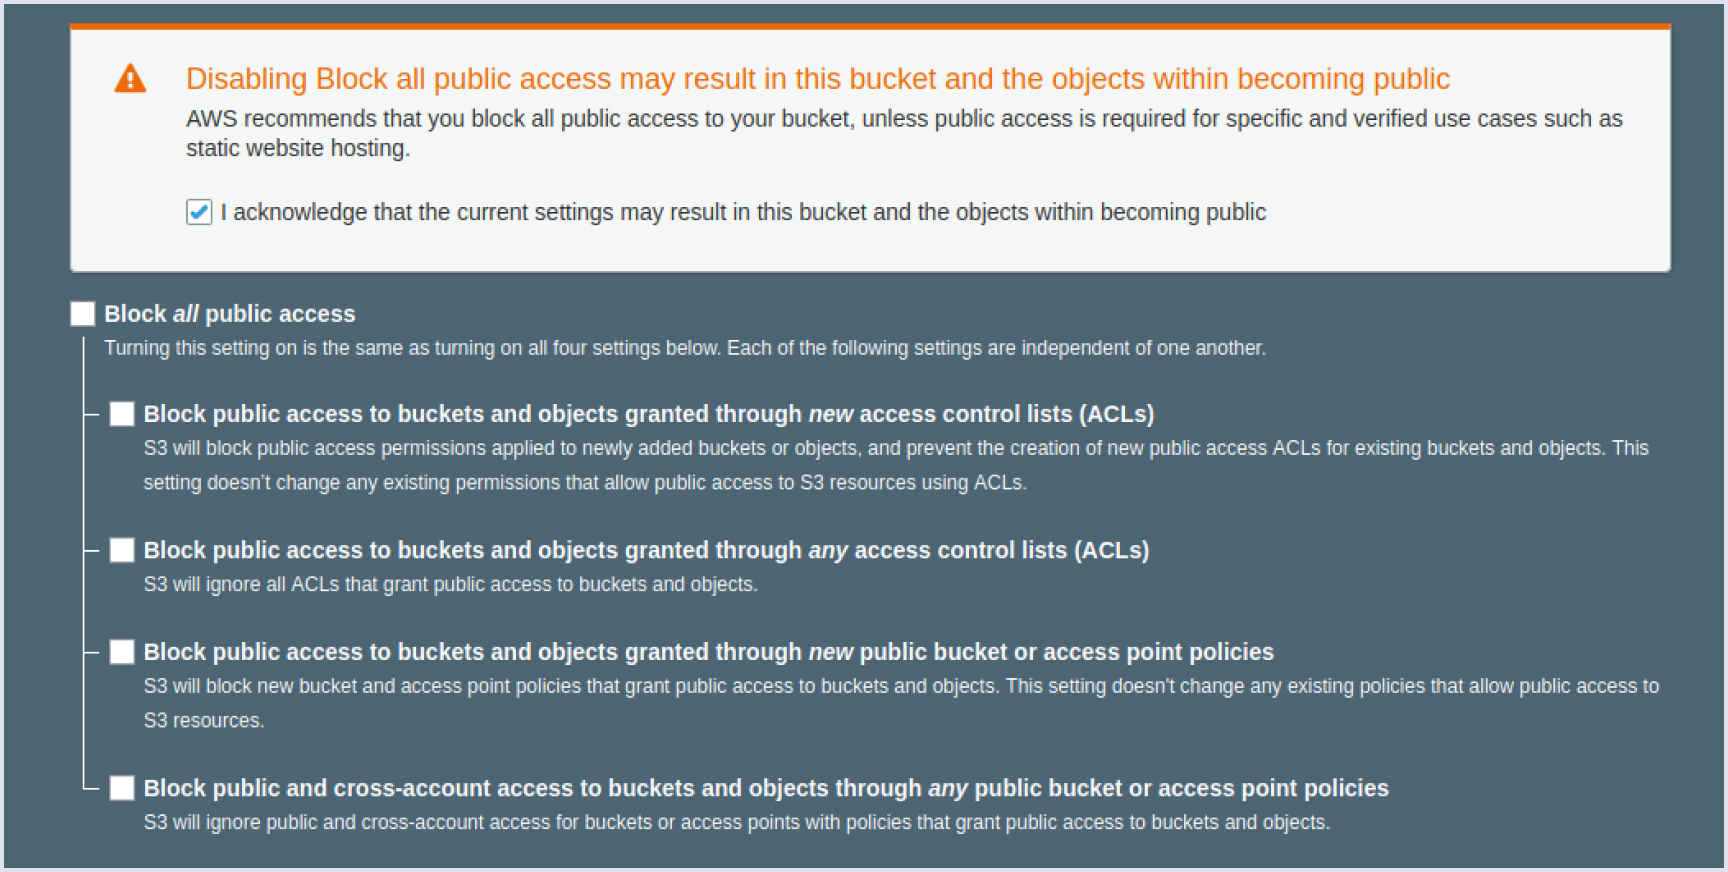 Provide public access to your bucket